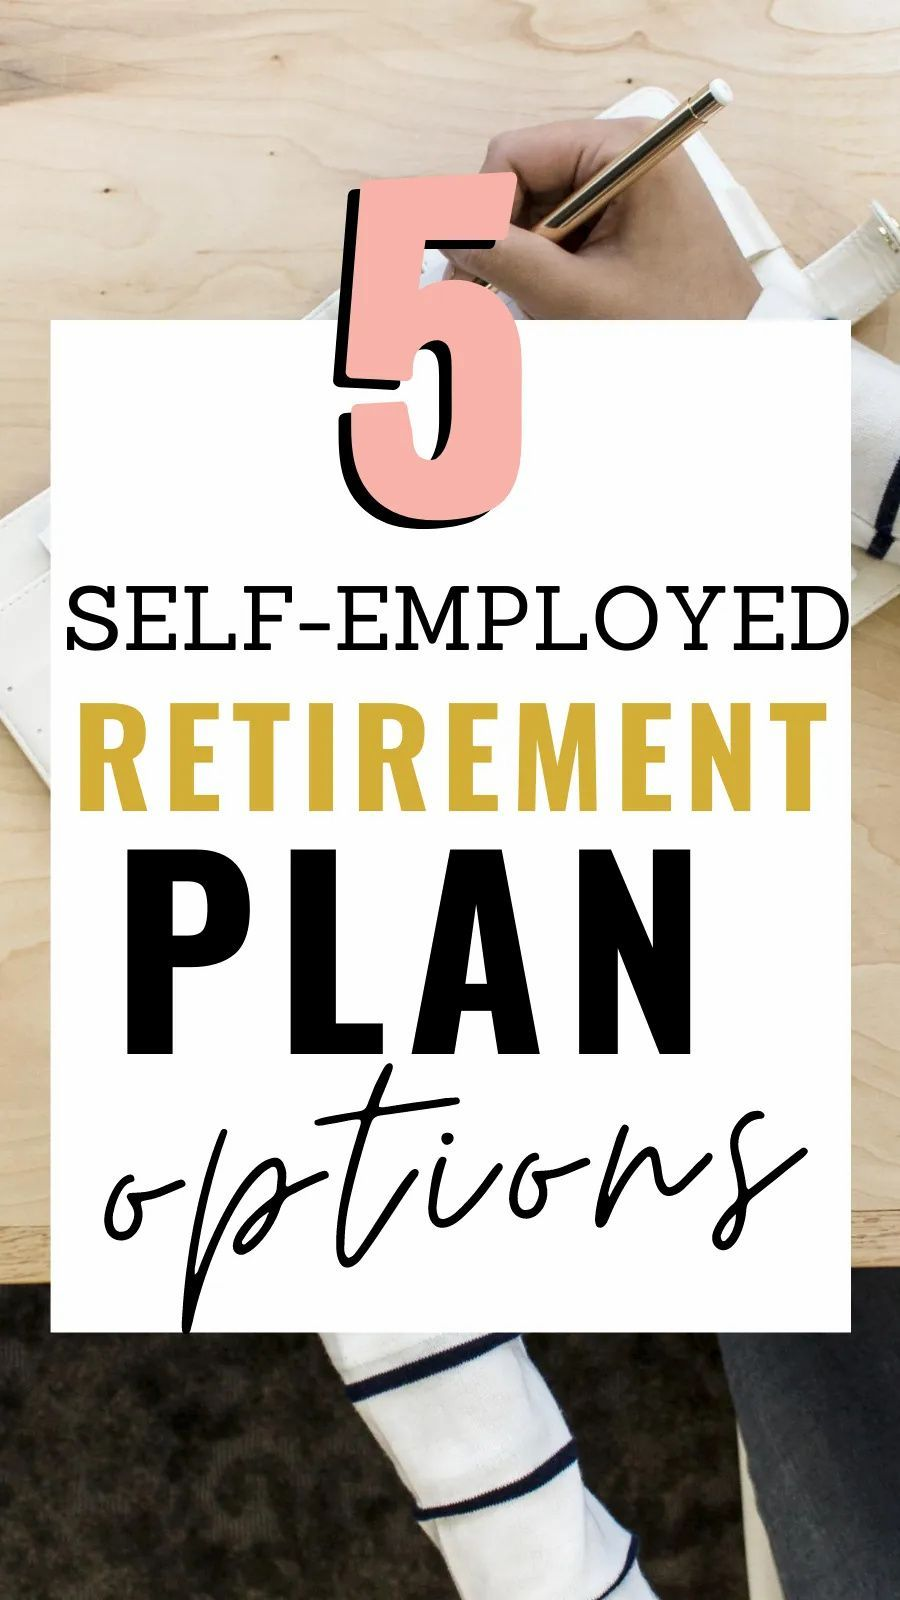 5 Unique SelfEmployed Retirement Plans You Need to Know